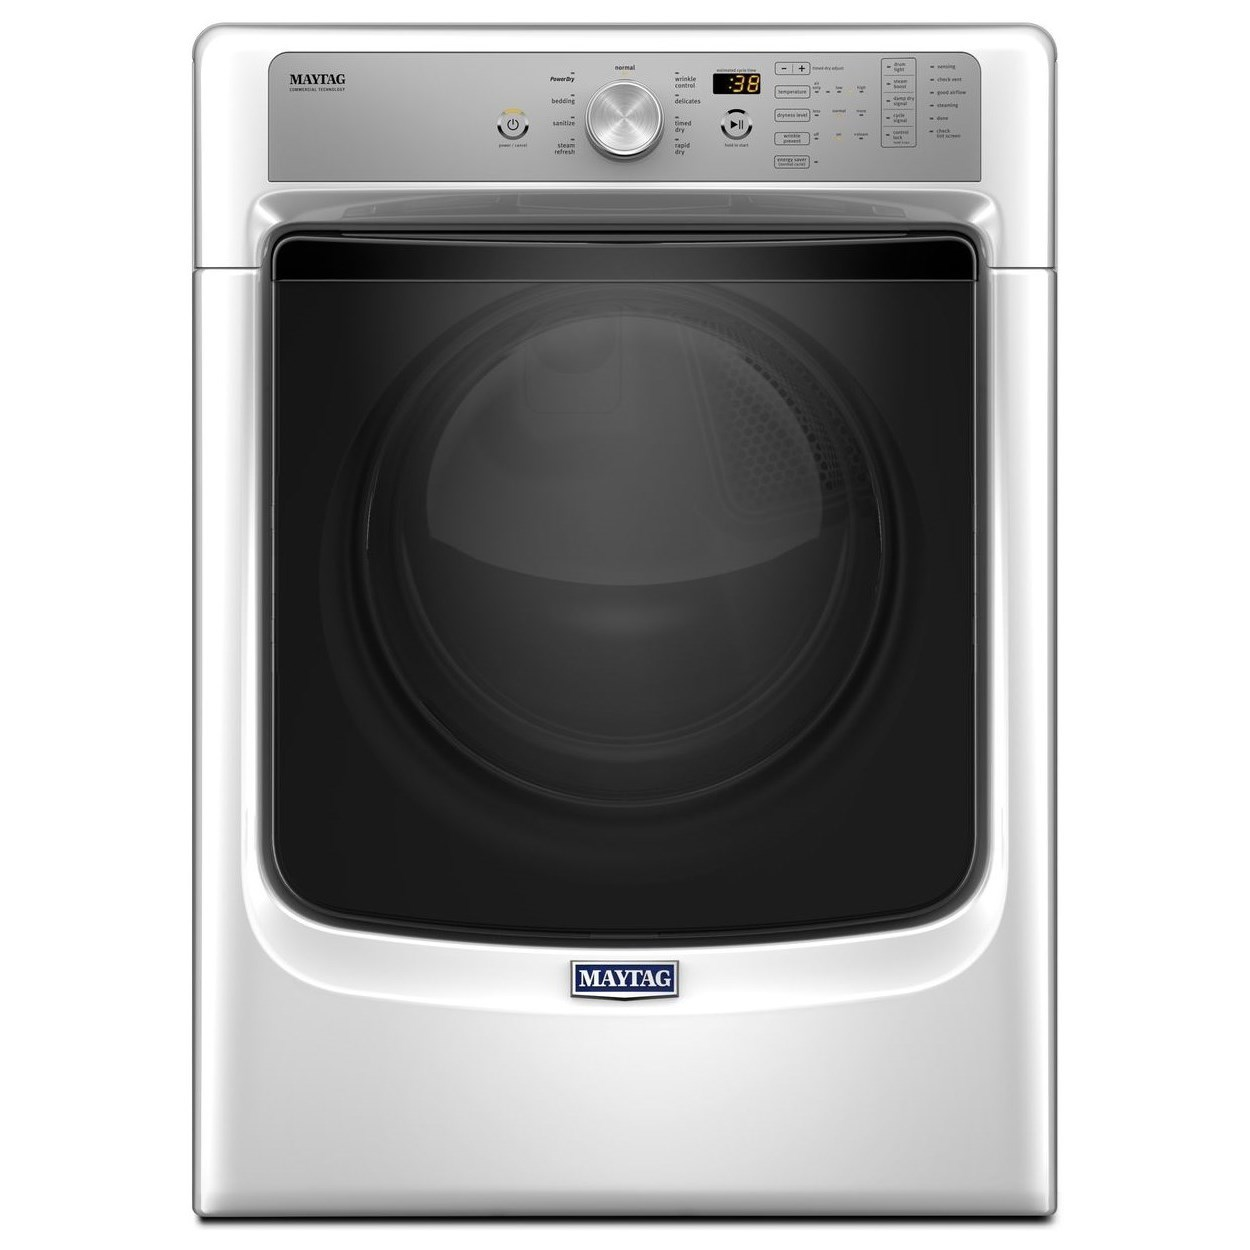 Maytag Front Load Electric Dryers 7.4 Cu. Ft. Large Capacity Dryer - Item Number: MED5500FW